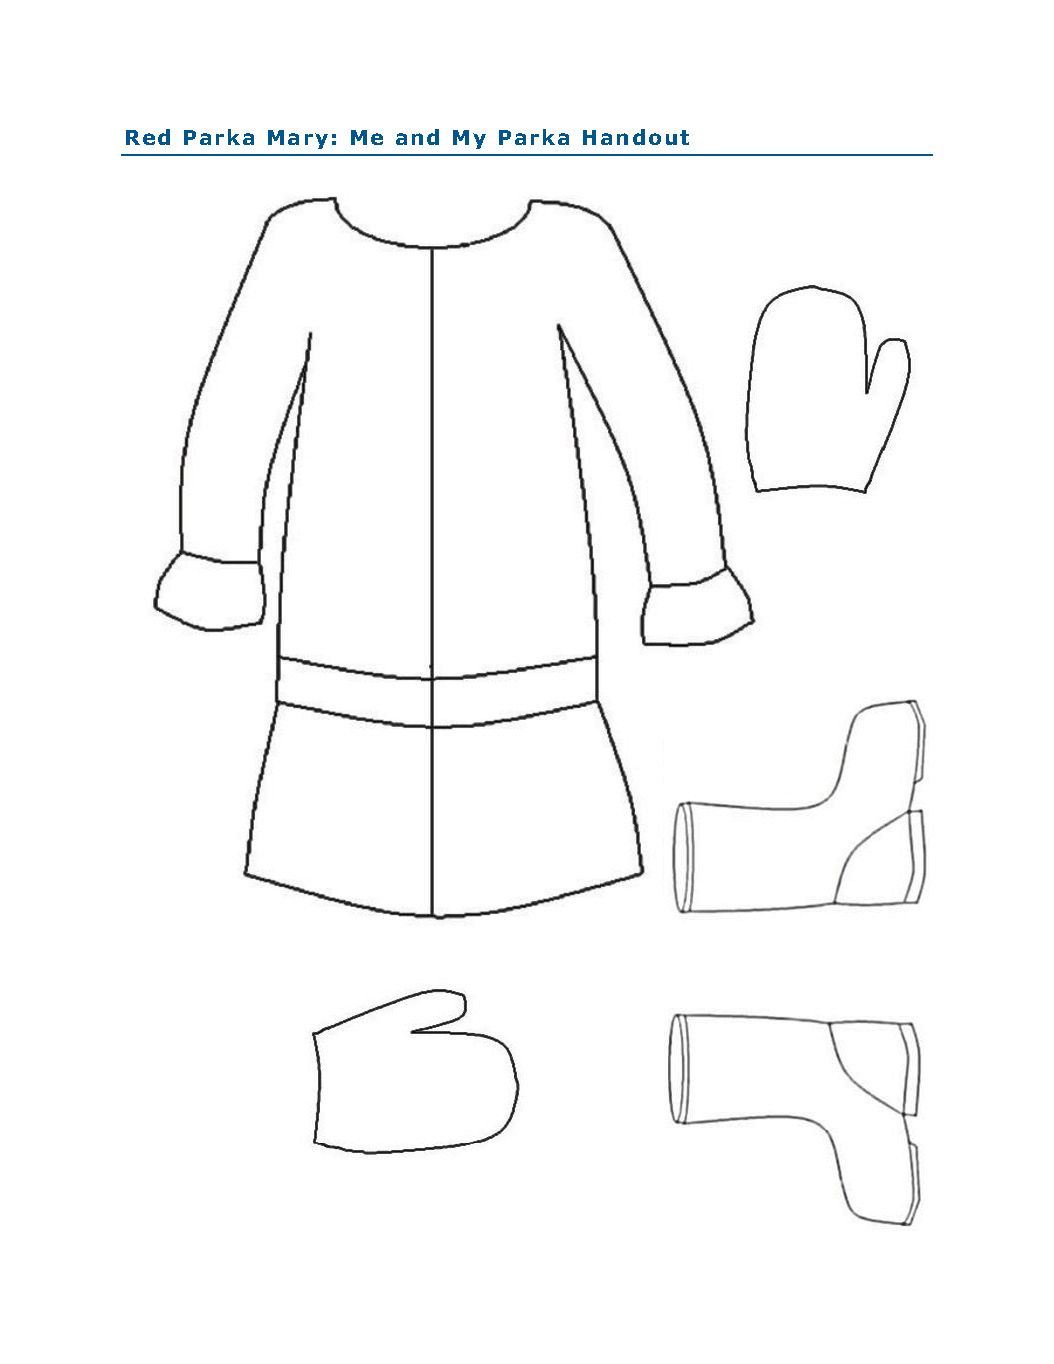 Me And My Parka Activity For Red Parka Mary By Peter